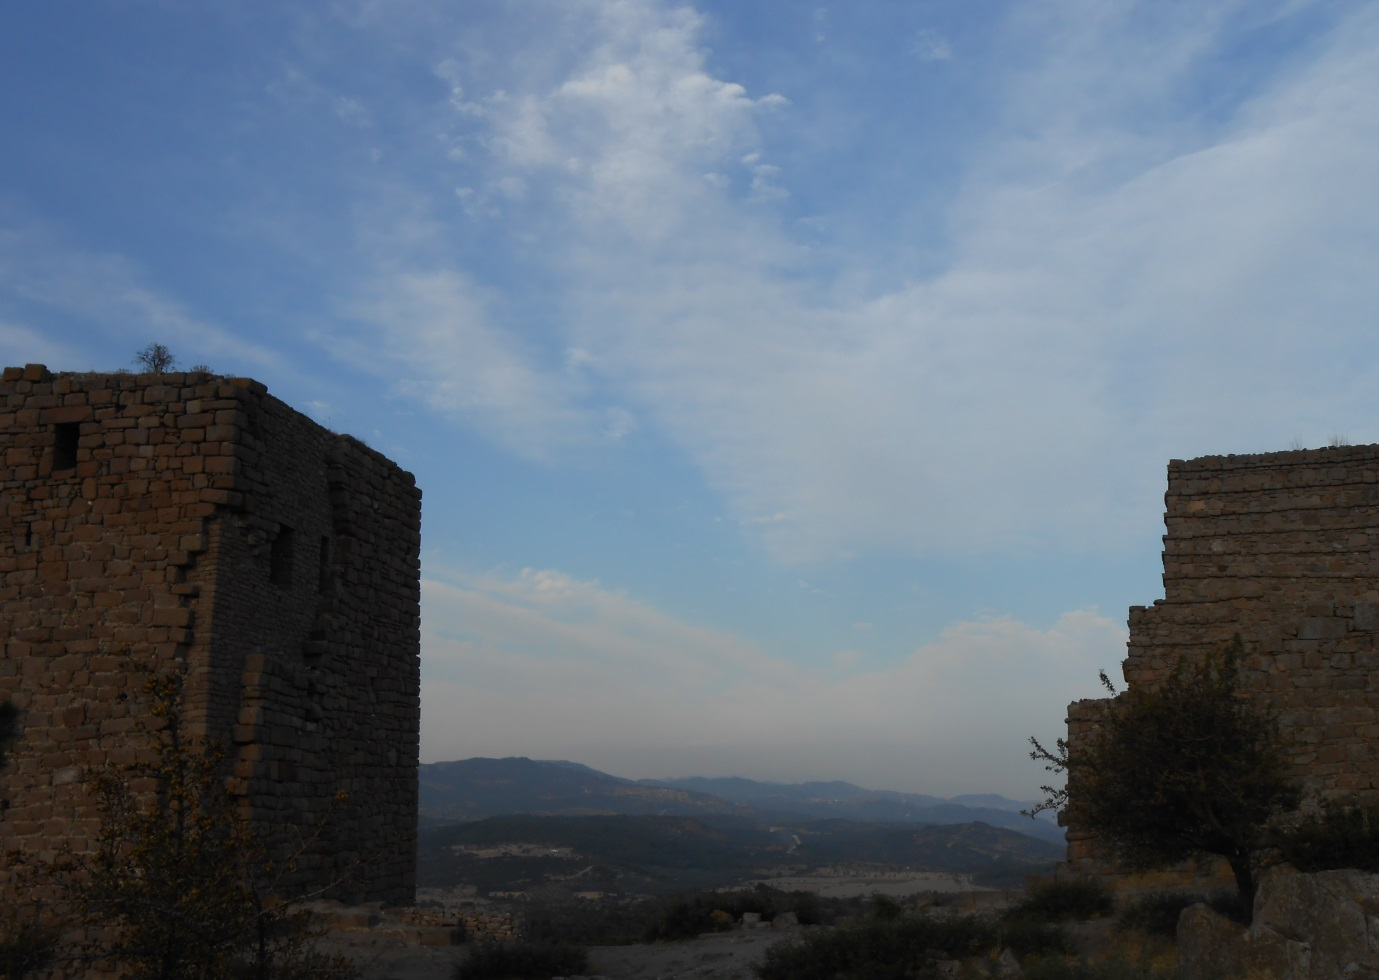 The ruins of the coastal Byzantine Fortress in the region historical region of Troas